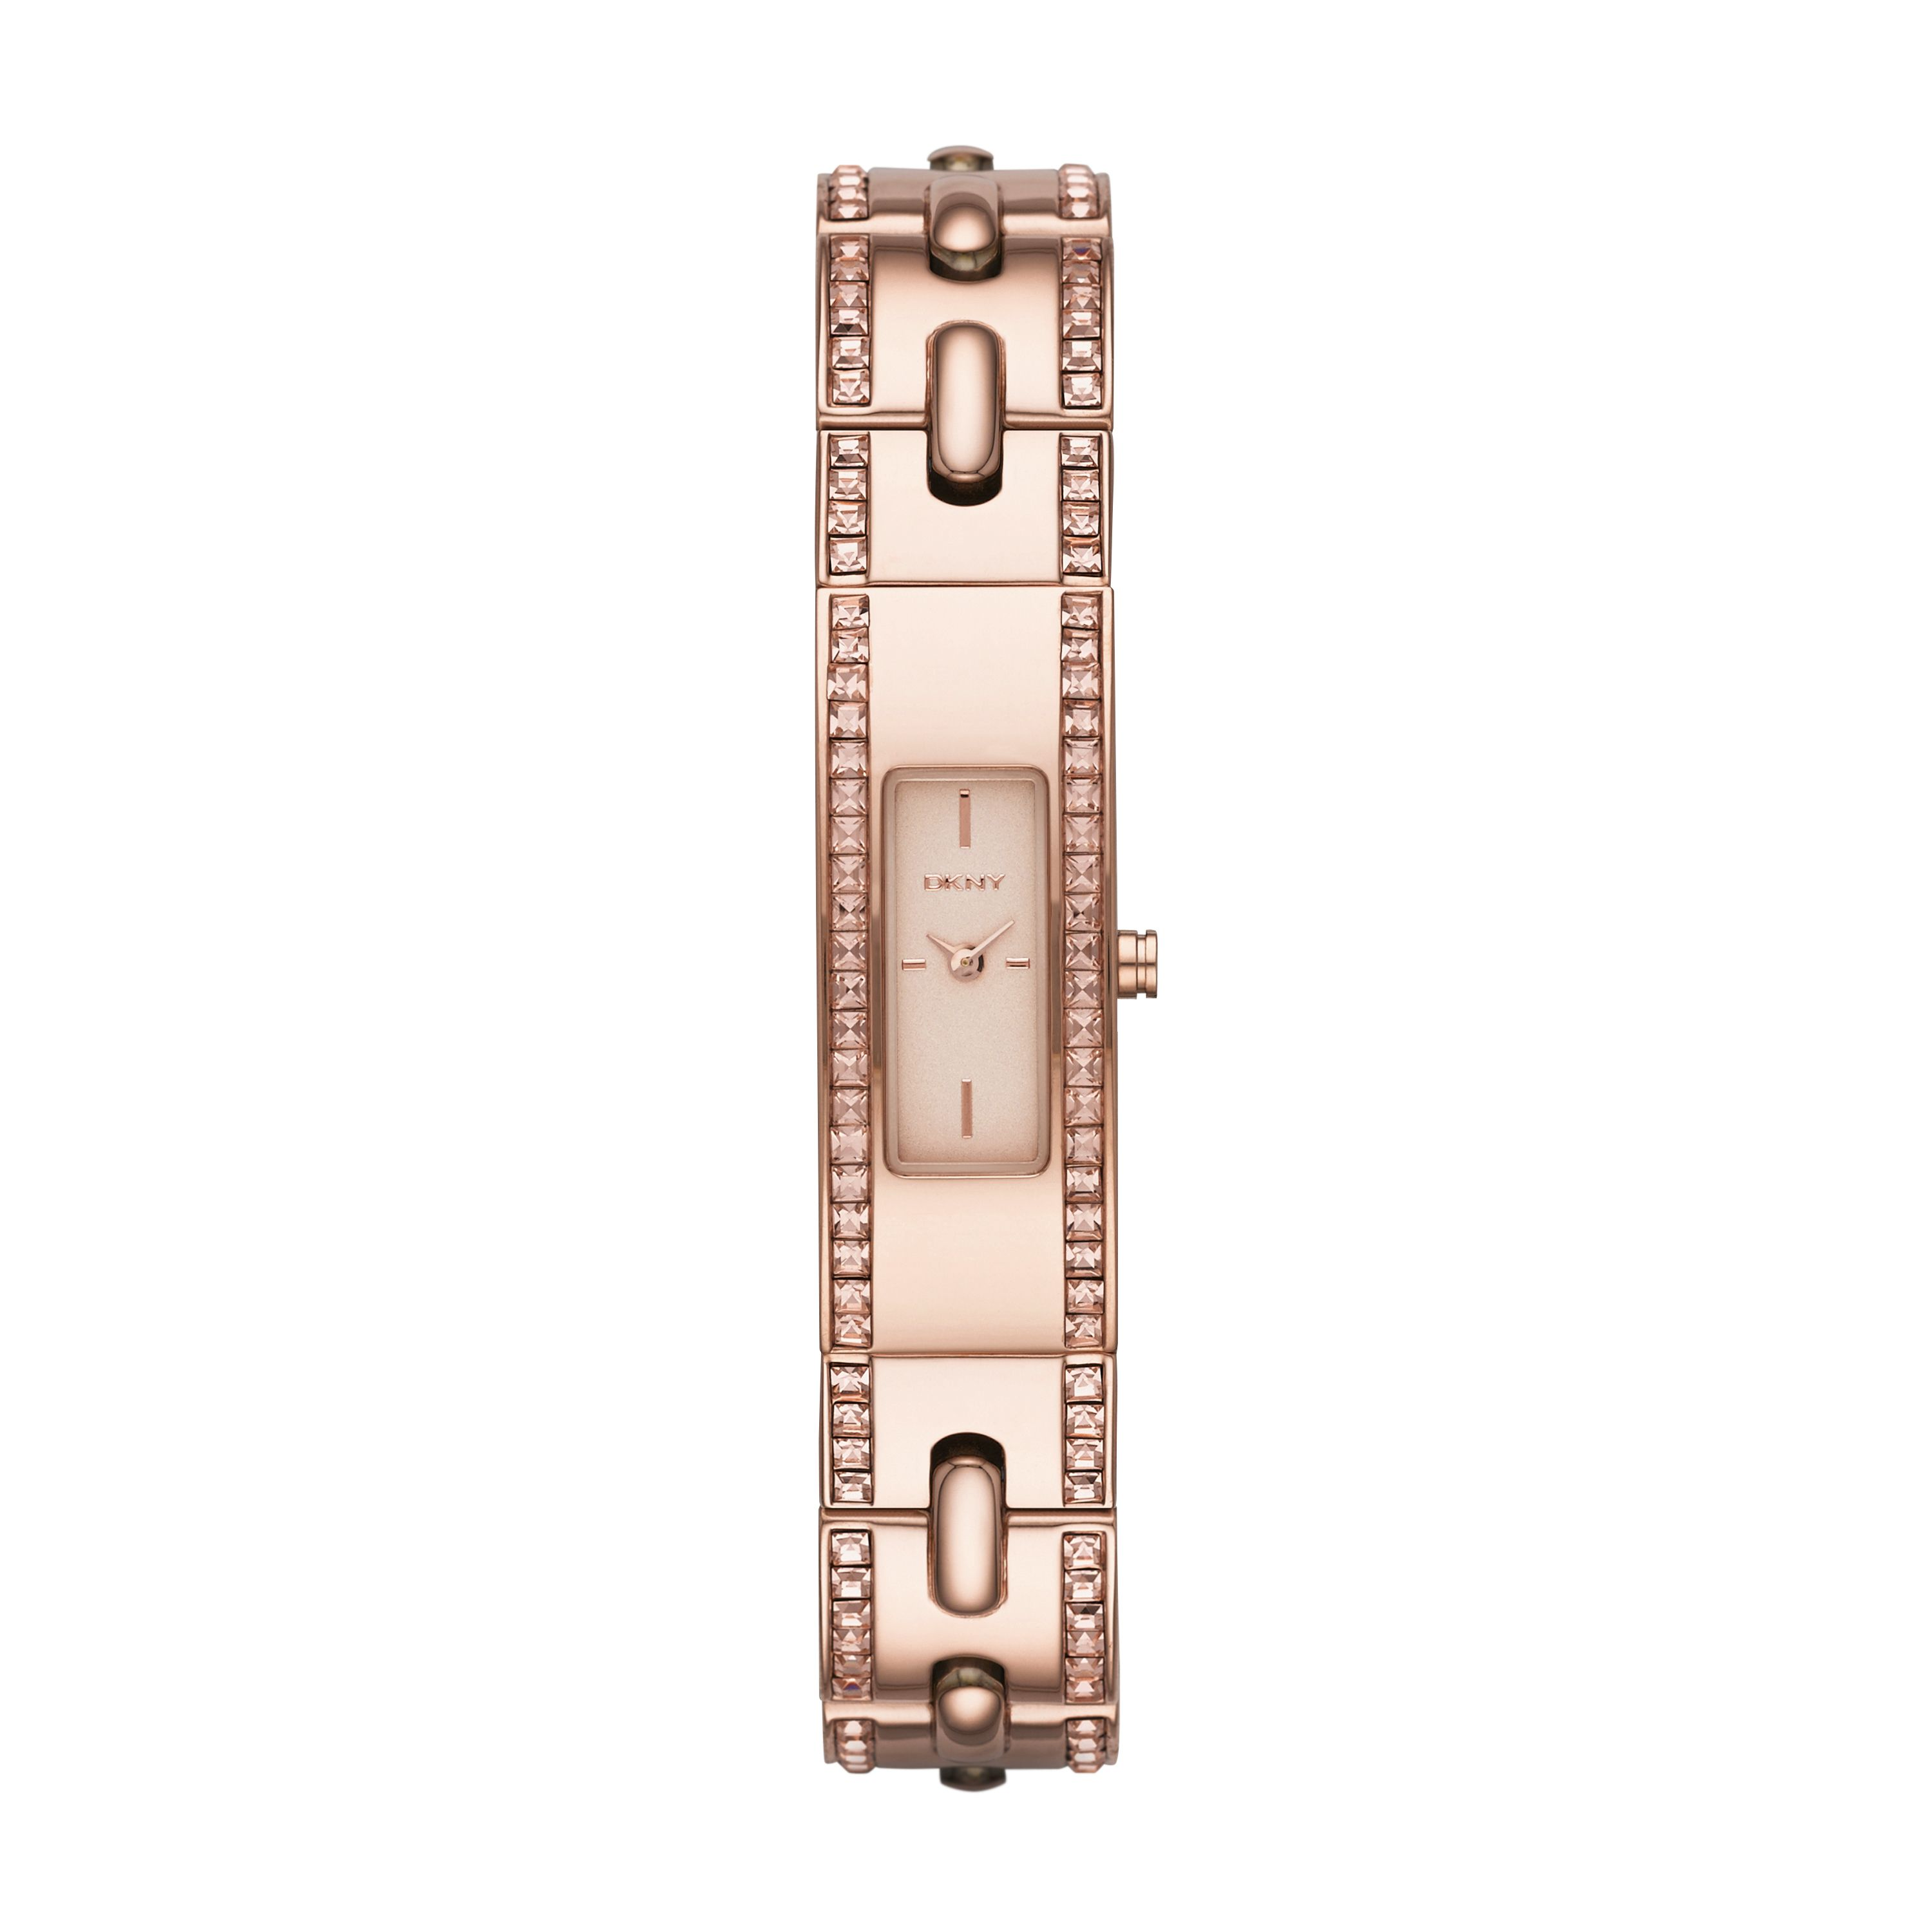 NY2176 Glam ladies crossover bracelet watch